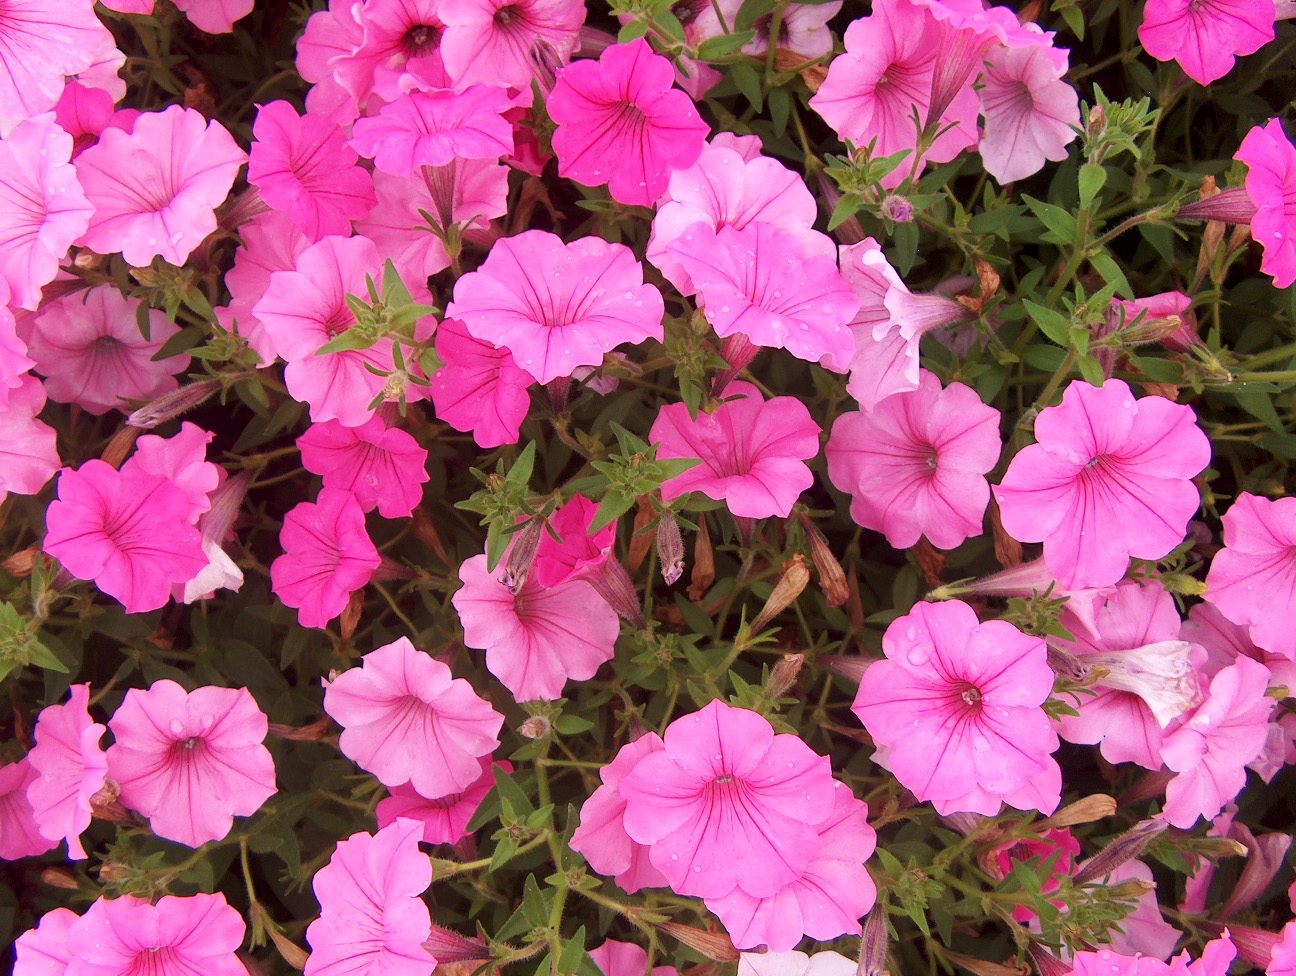 Petunia 'Supertunia Vista Bubblegum' / Petunia 'Supertunia Vista Bubblegum'